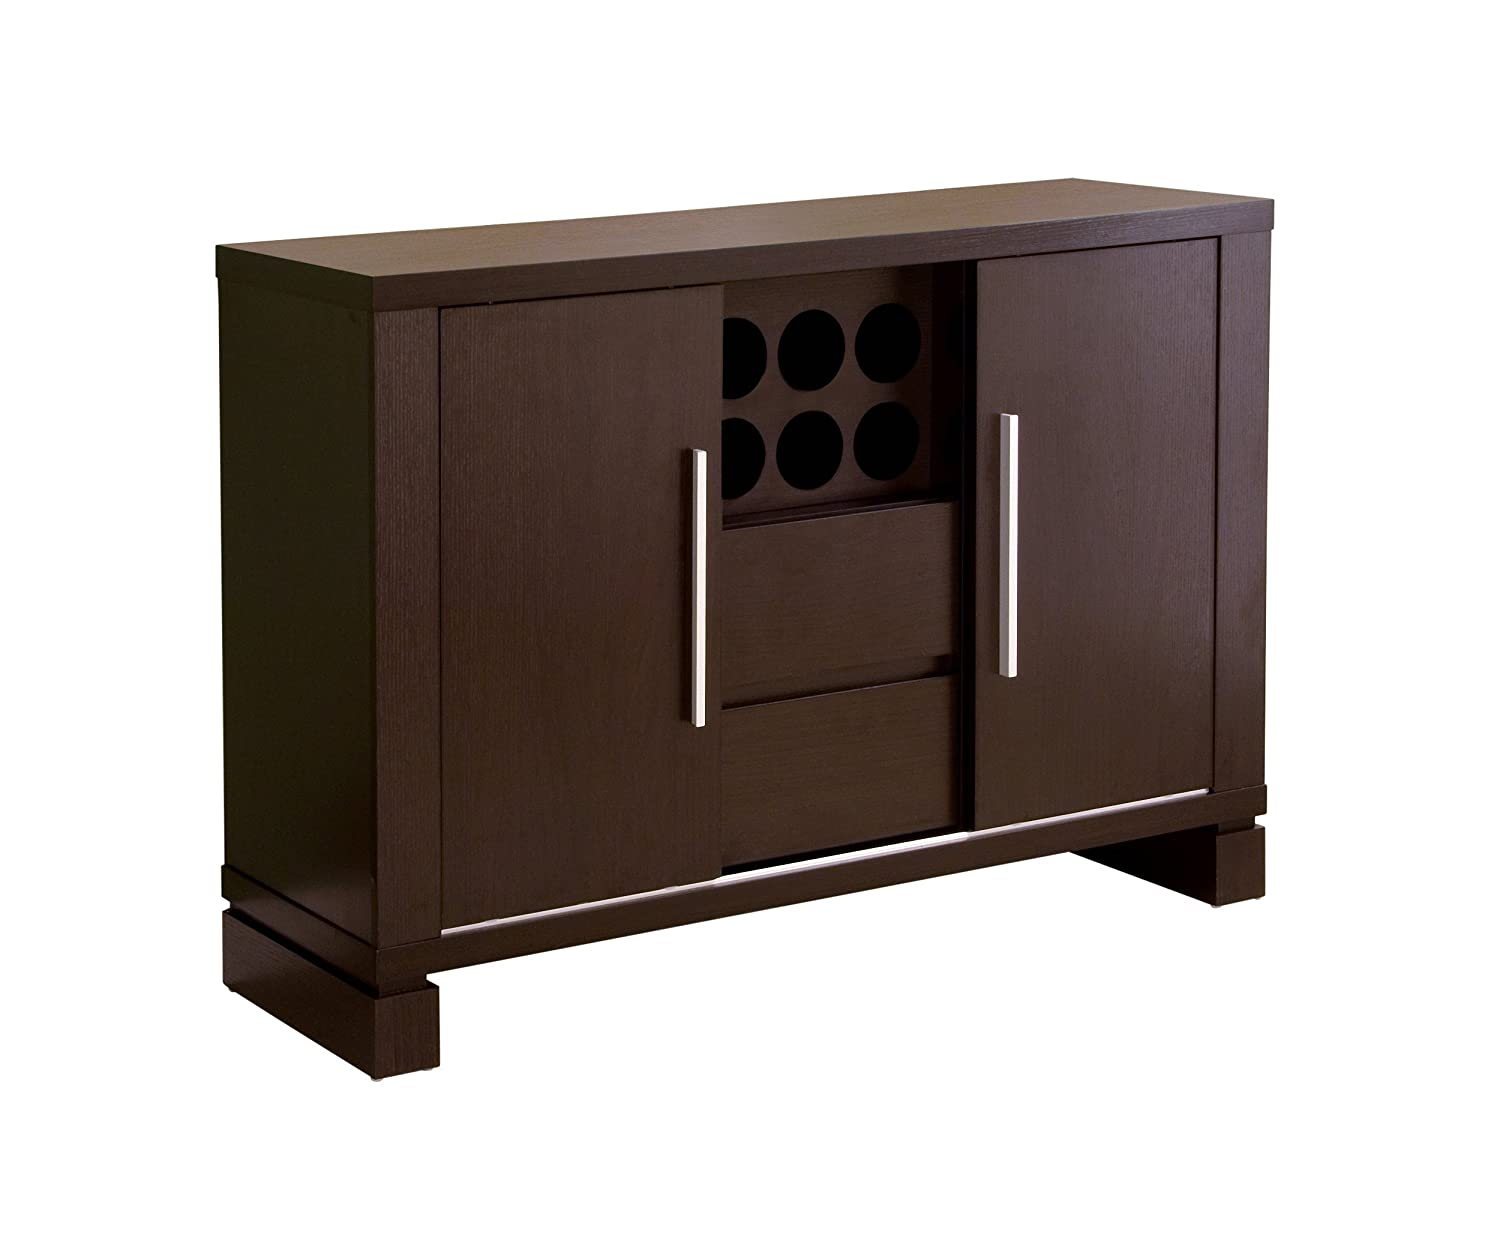 ioHOMES Studio Buffet with Wine Holder - Cappuccino